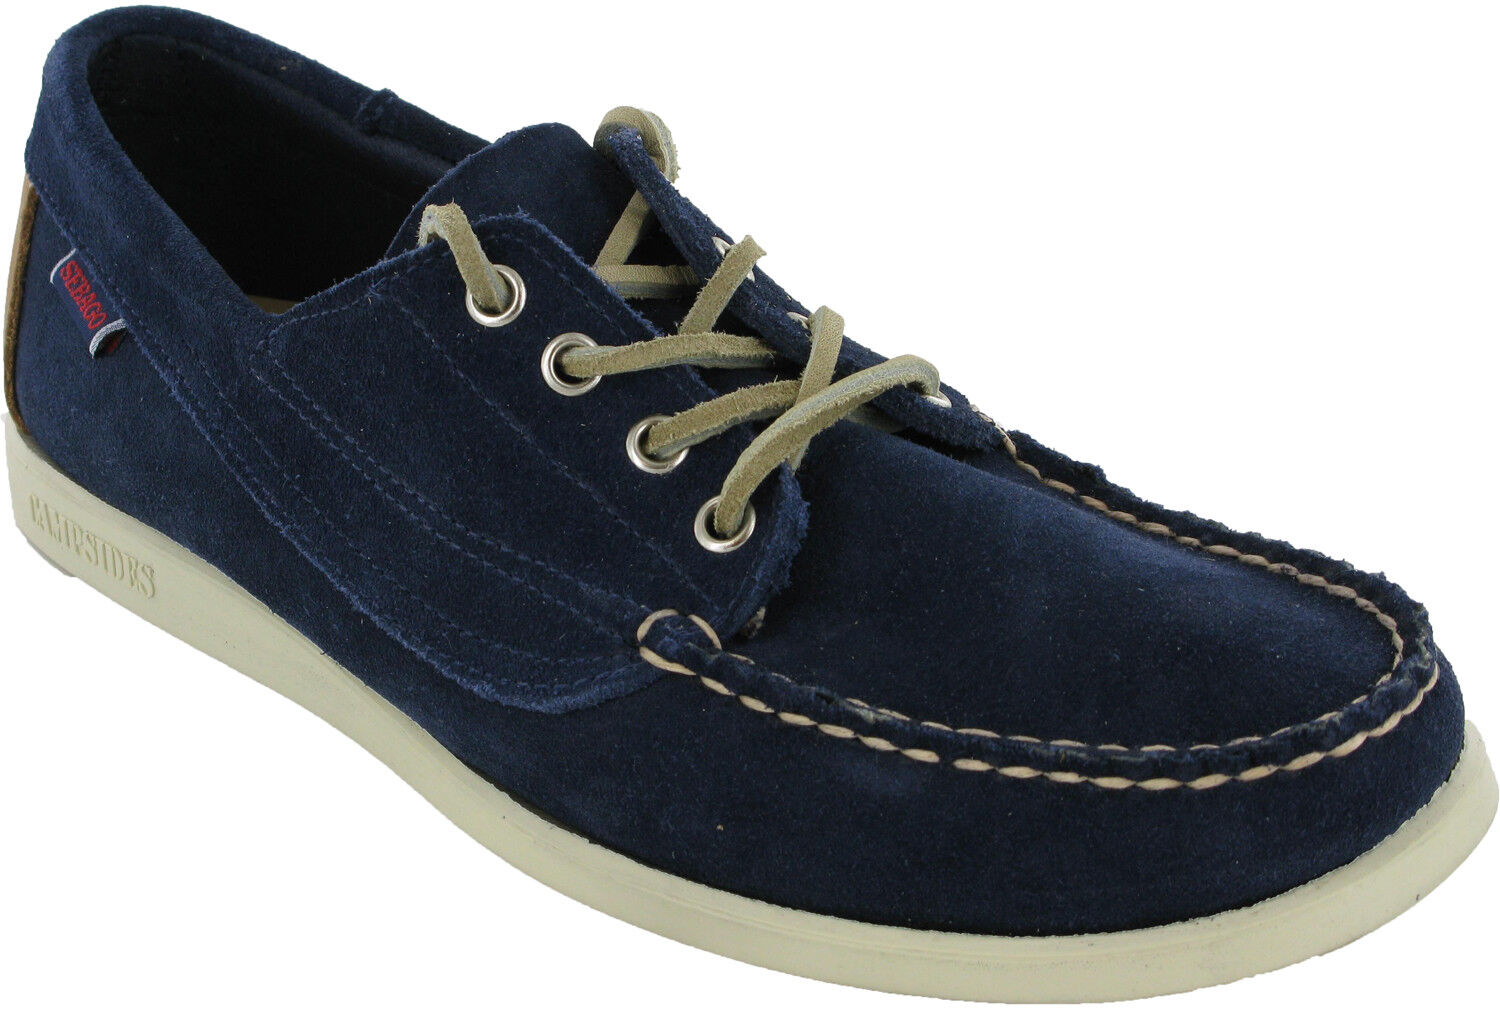 Sebago Campsides Navy Lace Up  Schuhes Herren Suede Casual Formal Loafer Schuhes  UK8.5 - 9 d5fde8